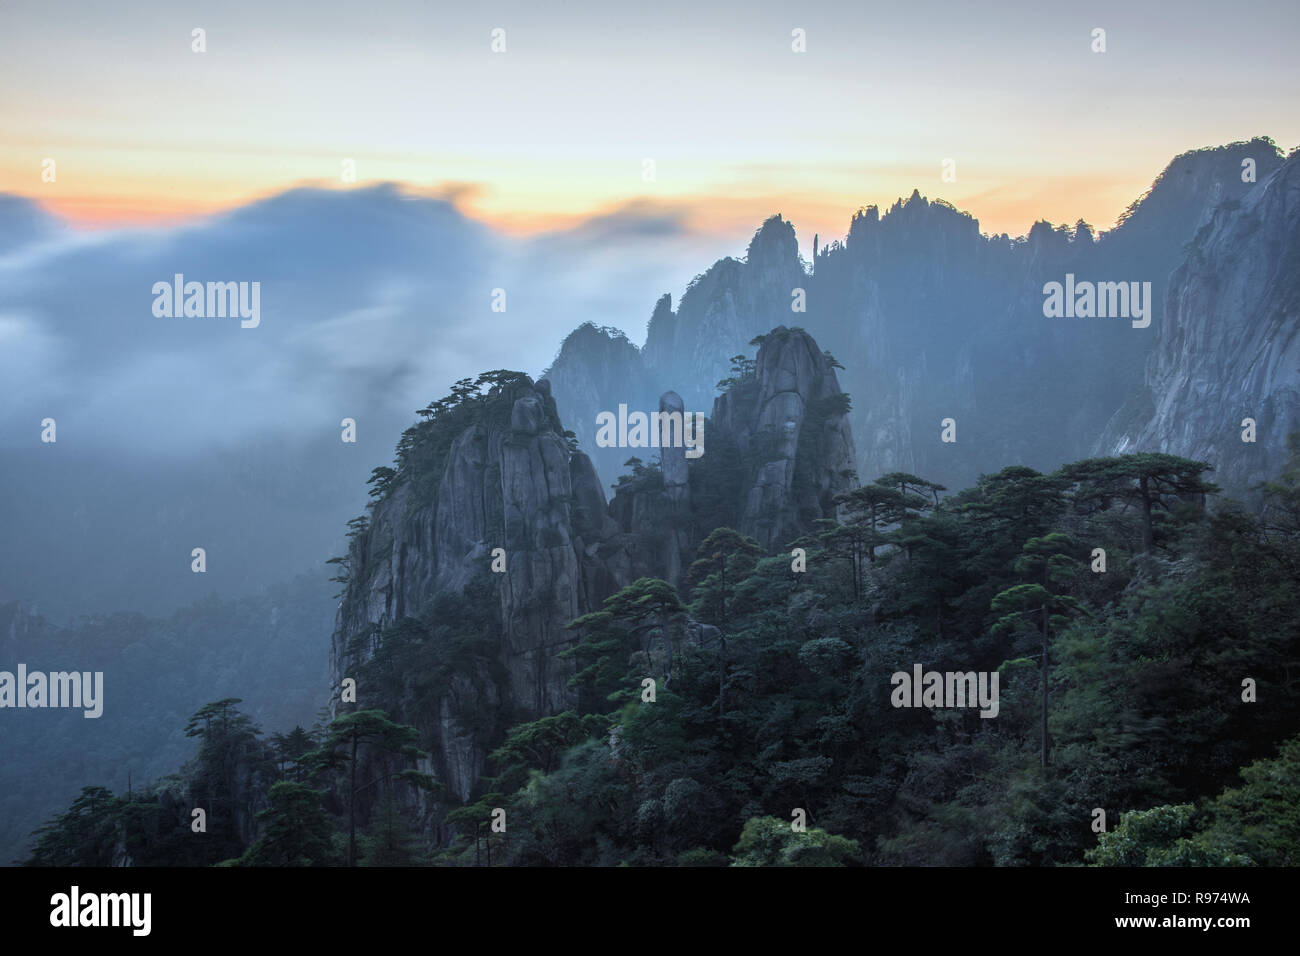 Huangshan pillars with blowing mists at sunrise, Anhui, China - Stock Image